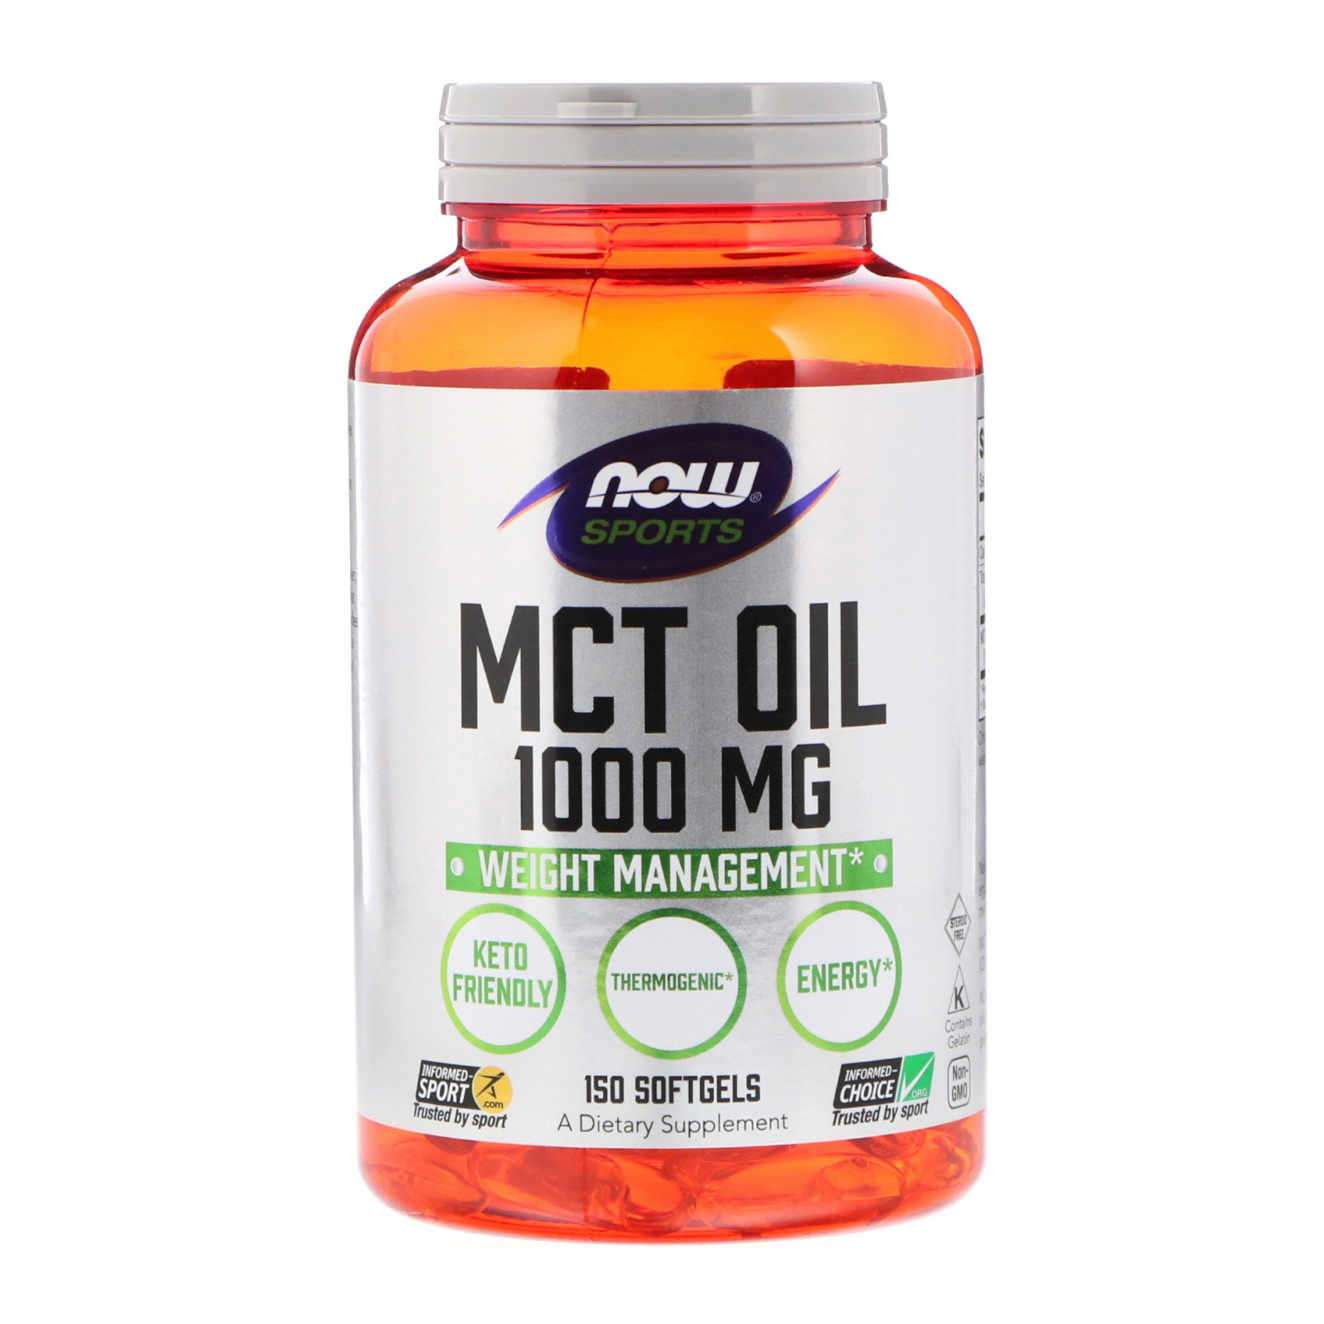 MCT OIL 1000mg - 150 softgels